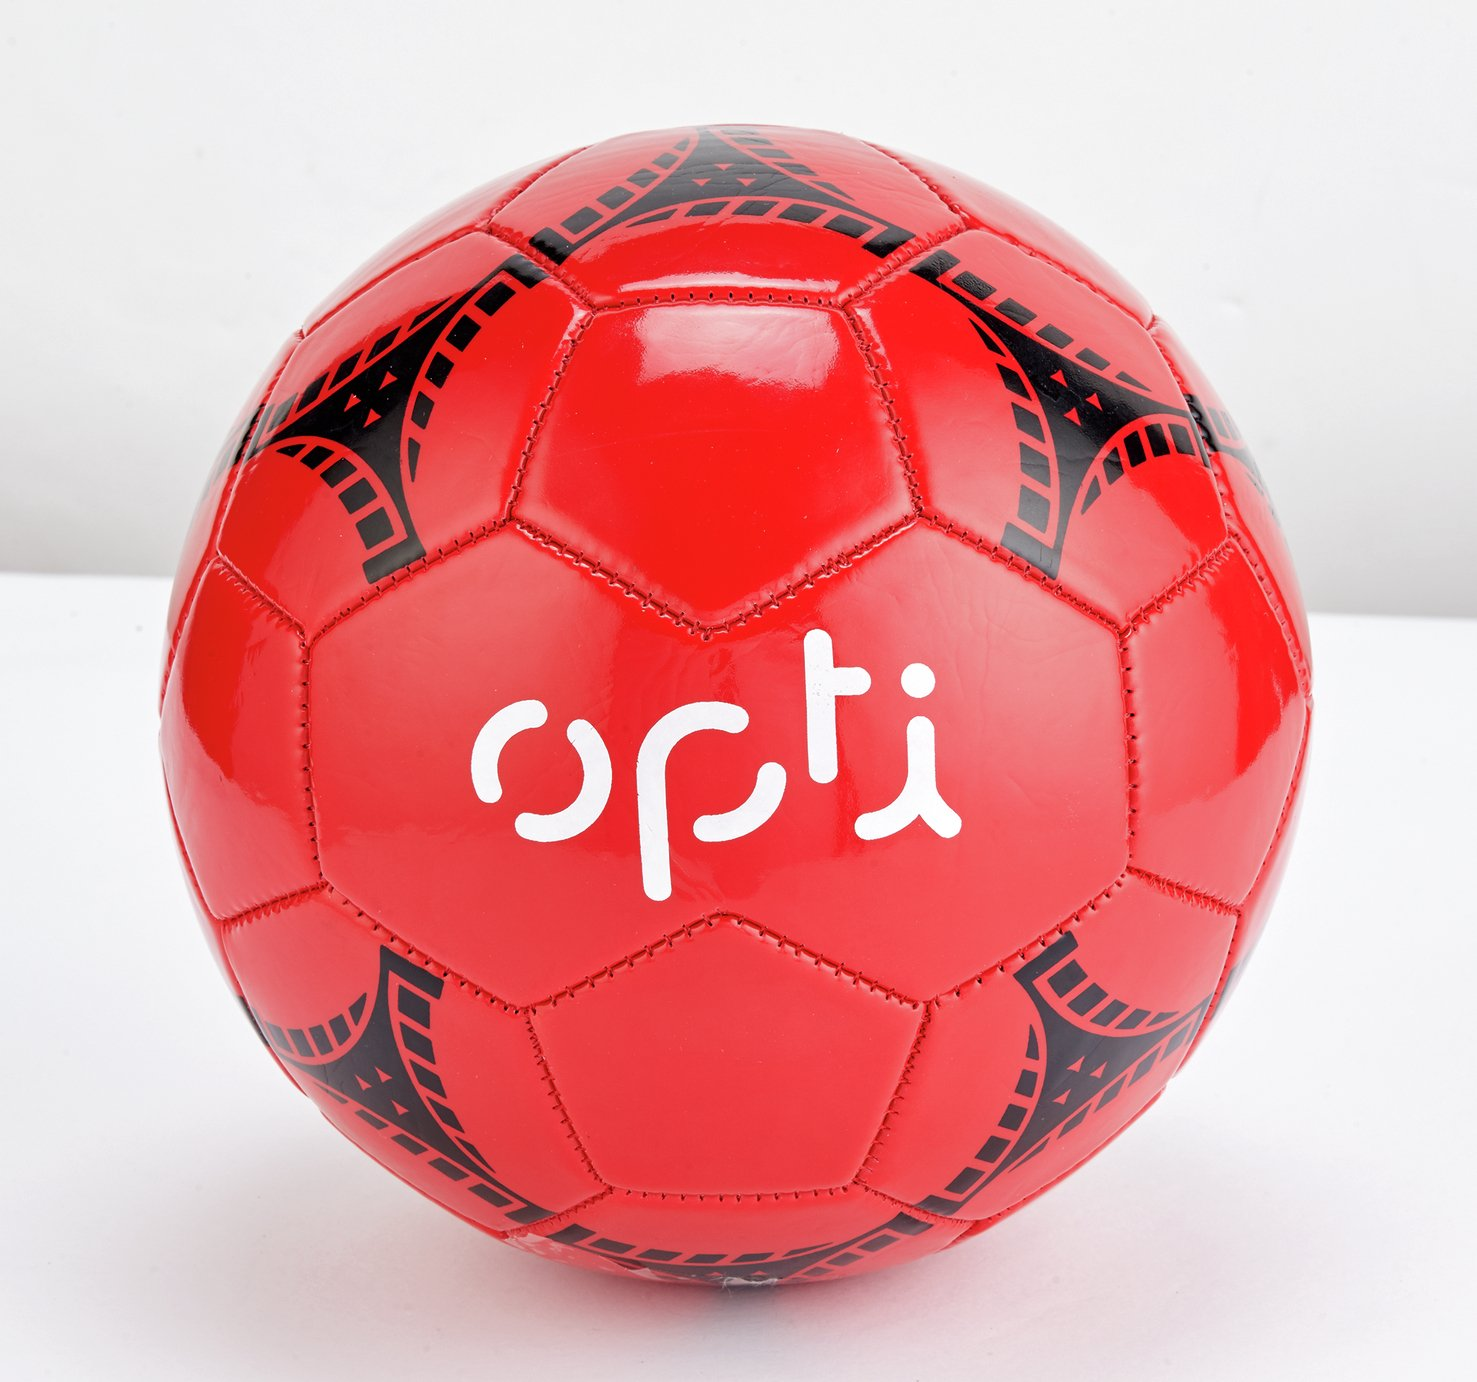 Opti Football Red lowest price